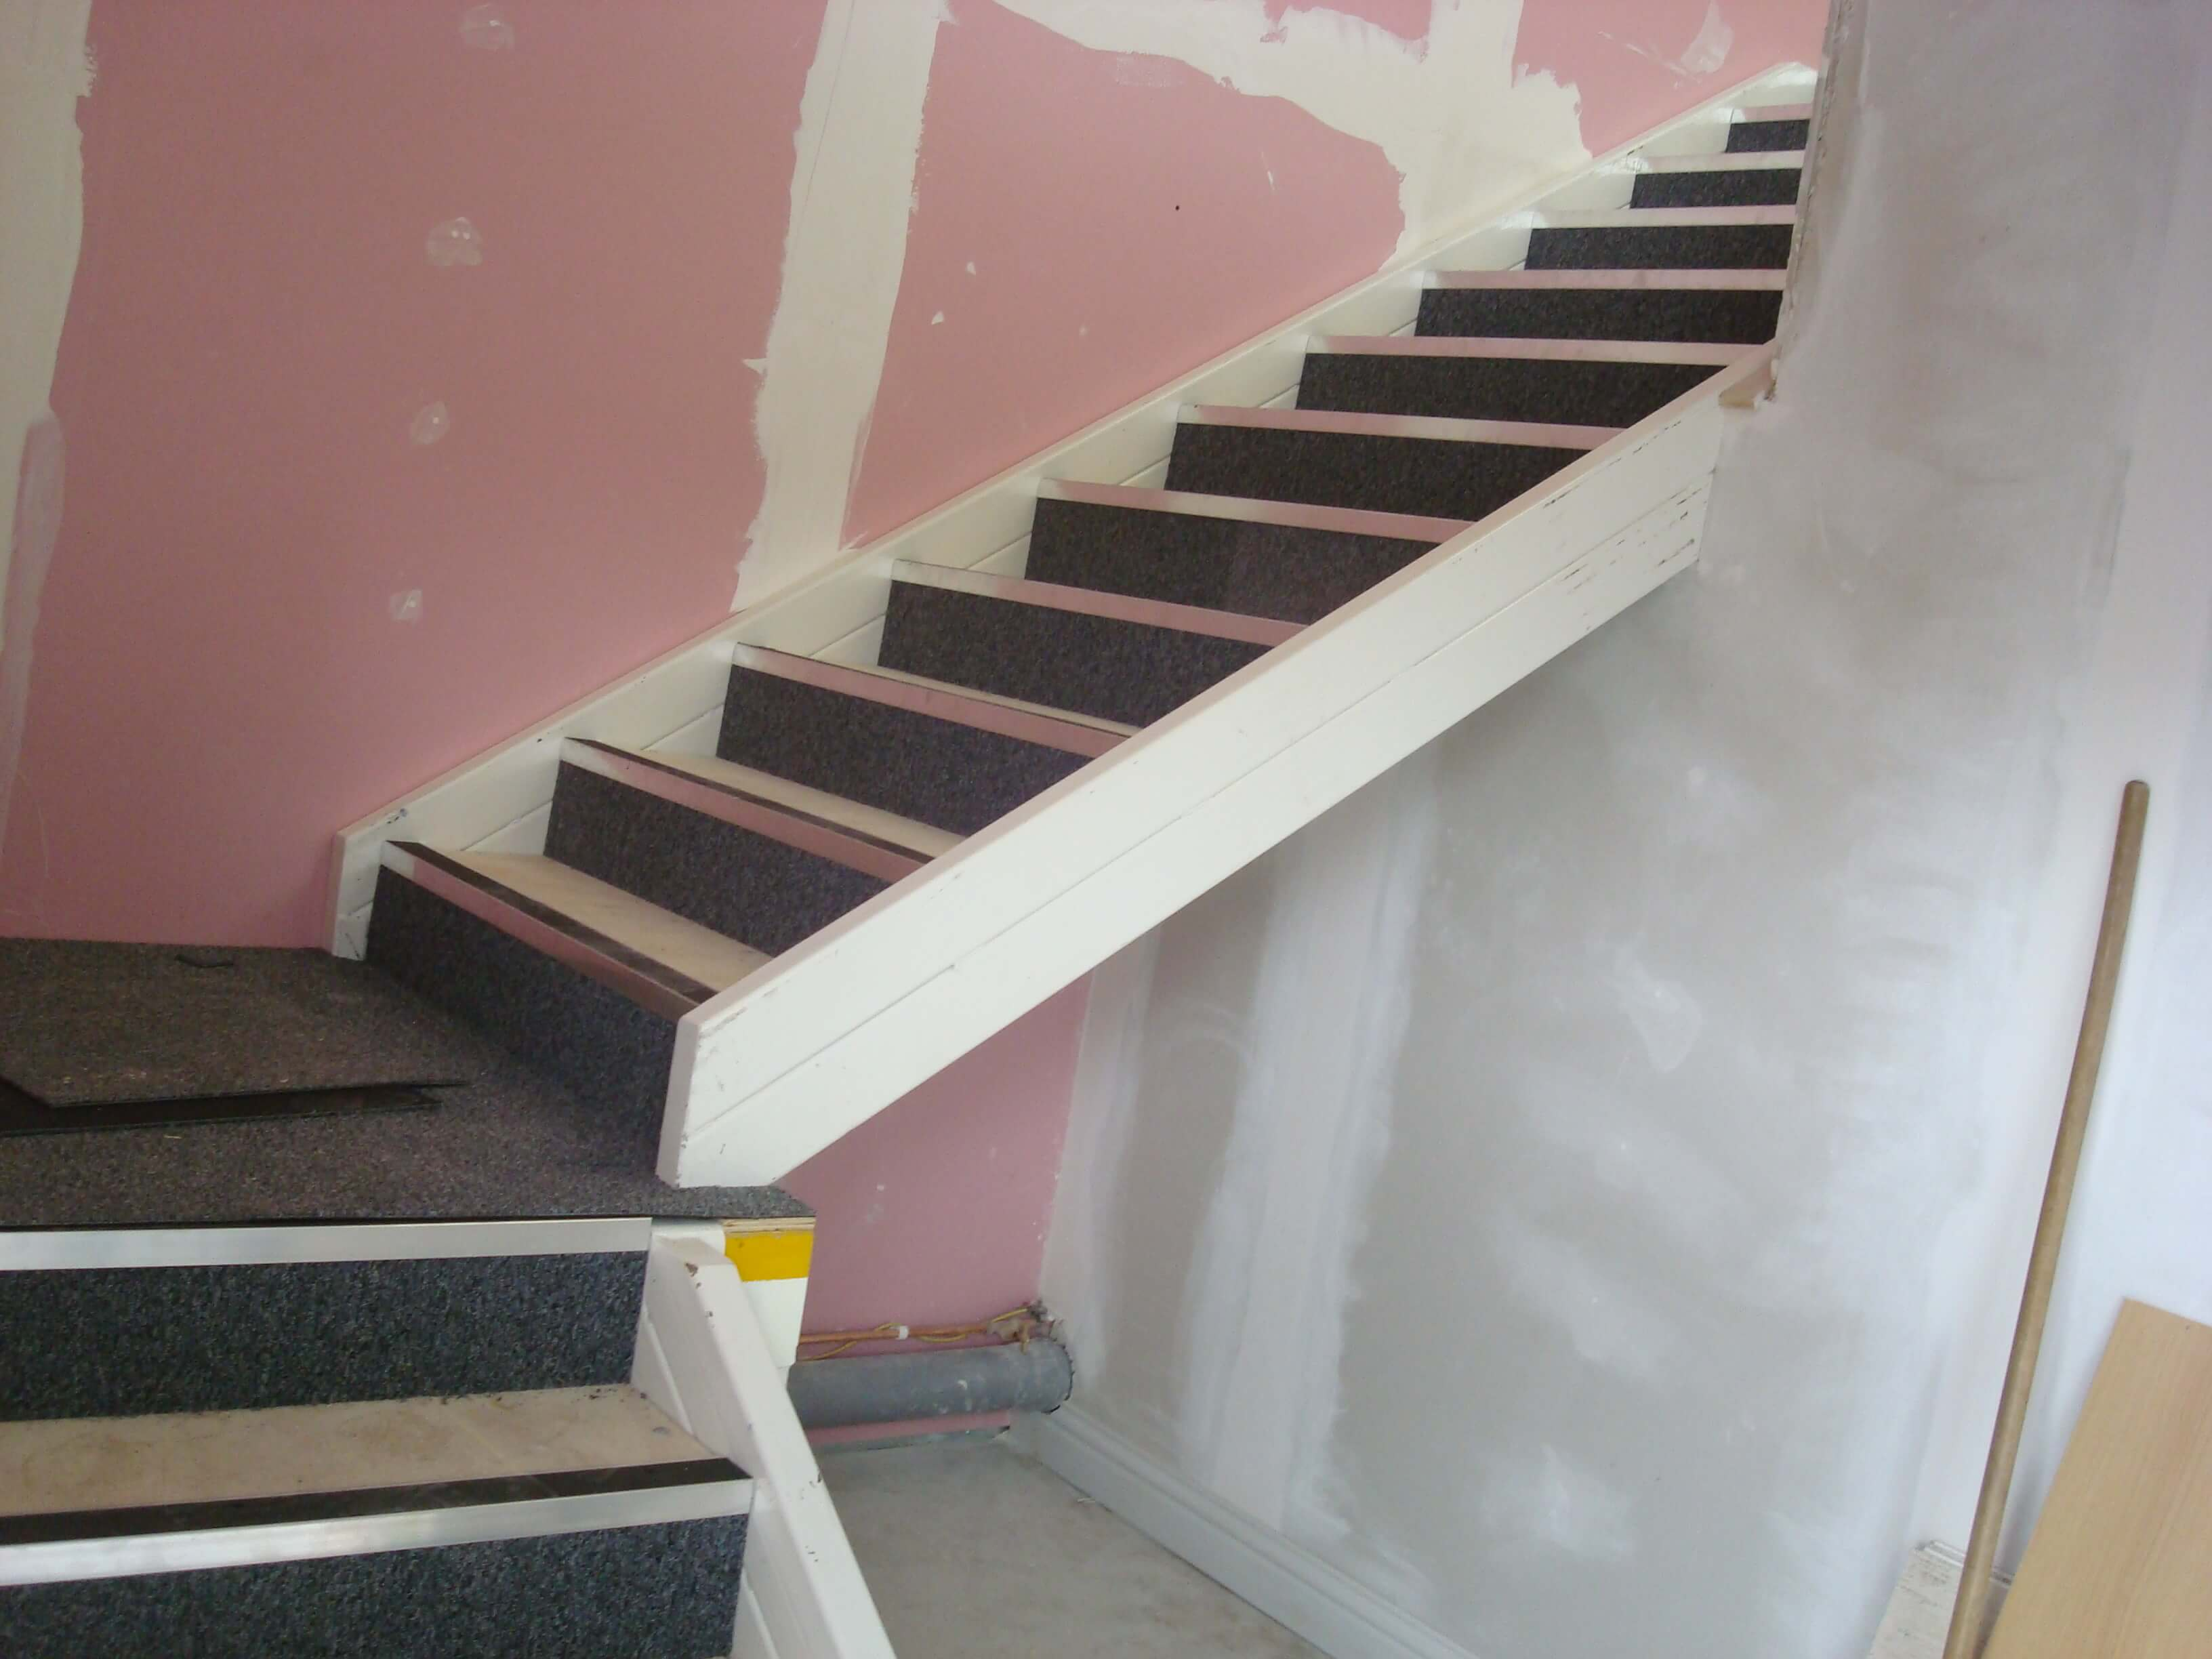 Stairs taking shape